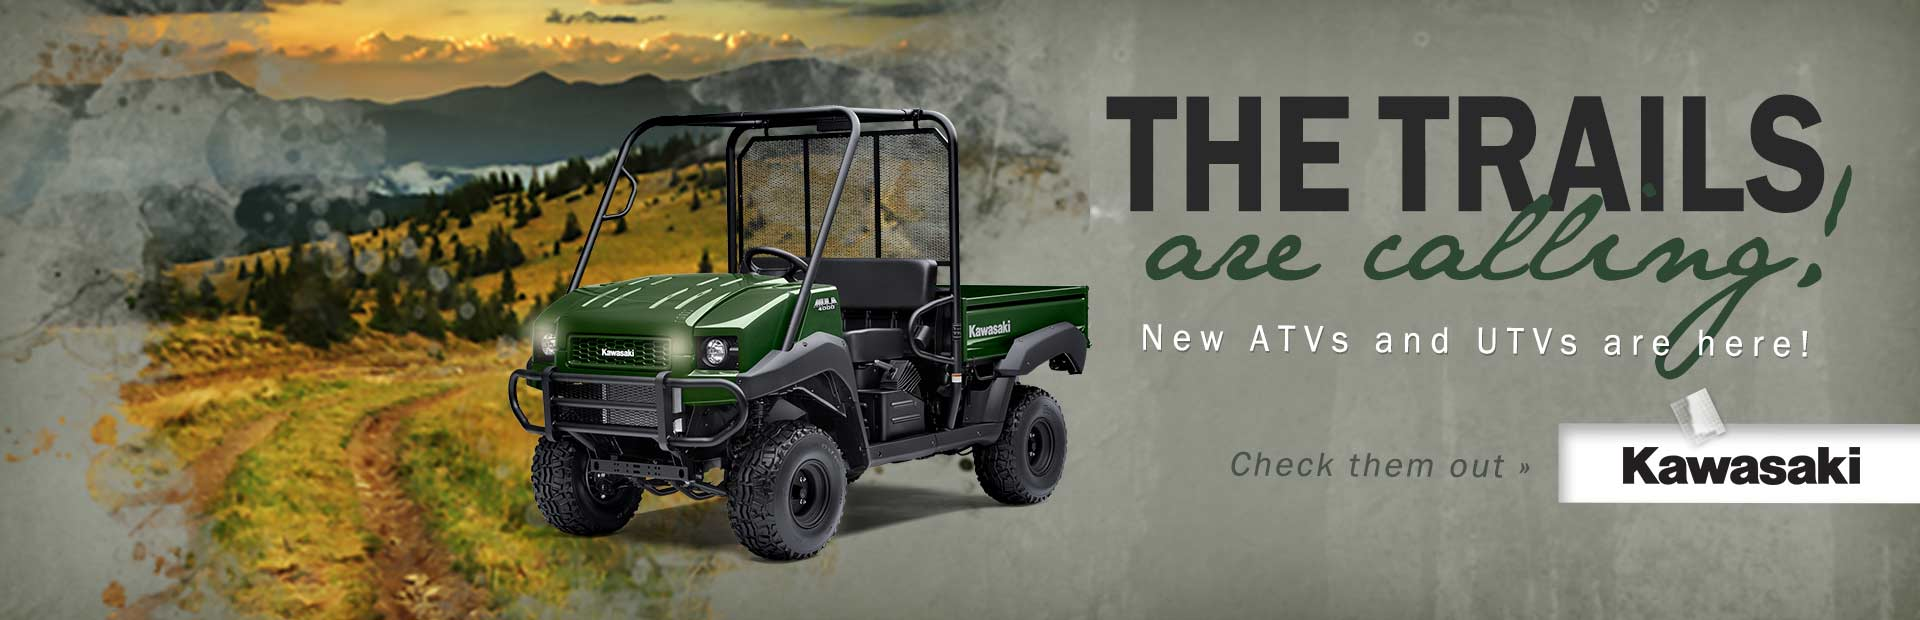 The trails are calling! Click here for new ATVs and UTVs from Kawasaki.